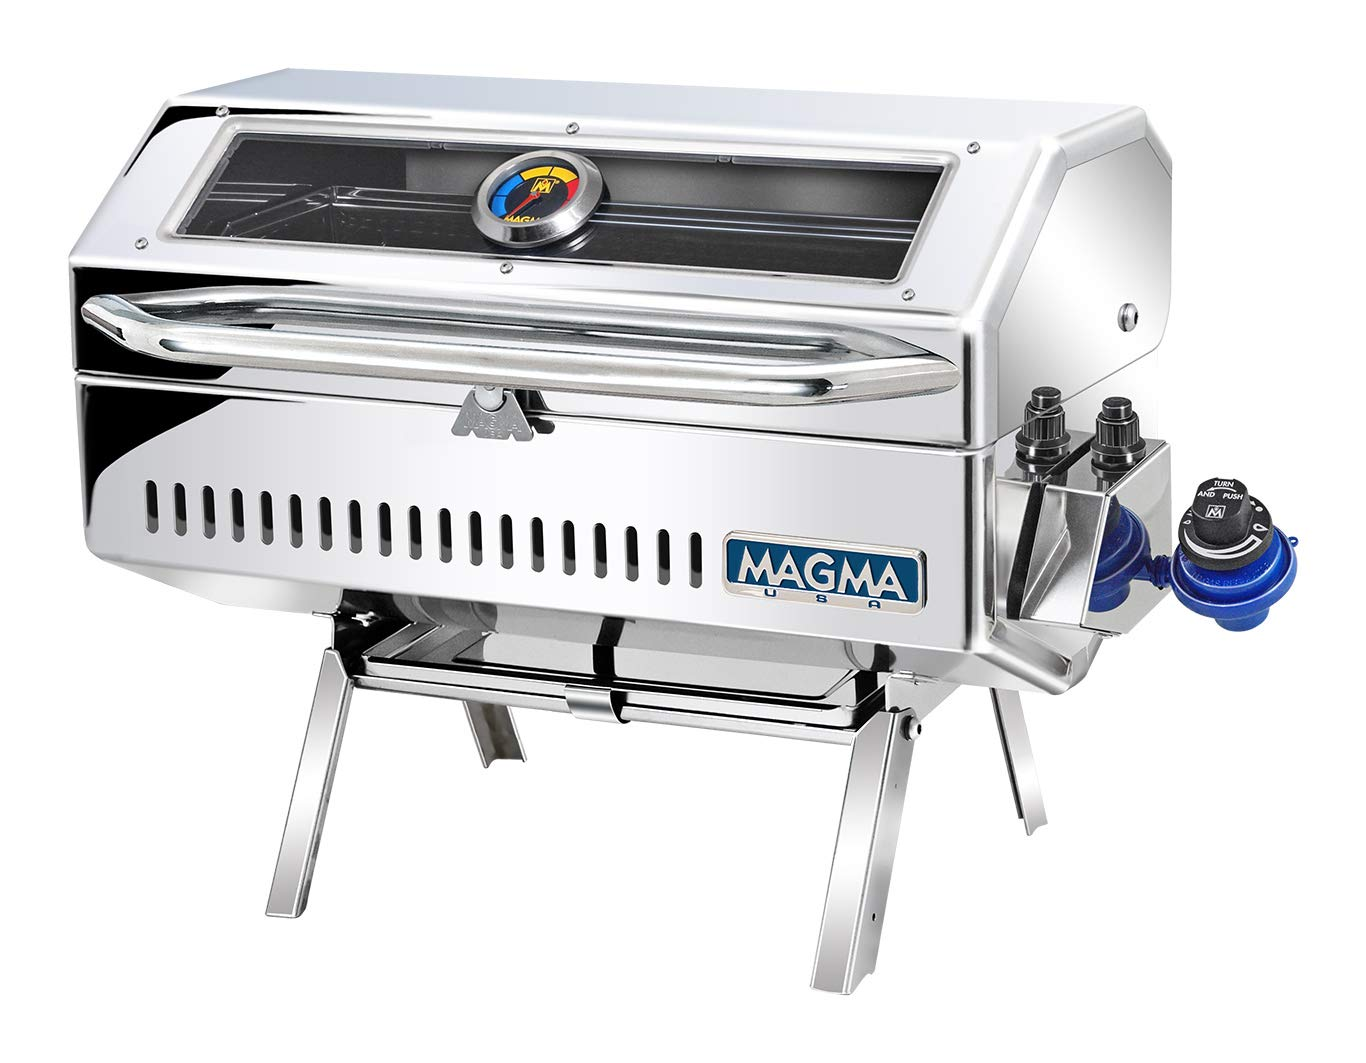 Magma Product Newport 2 Infrared Gourmet Series Gas Grill